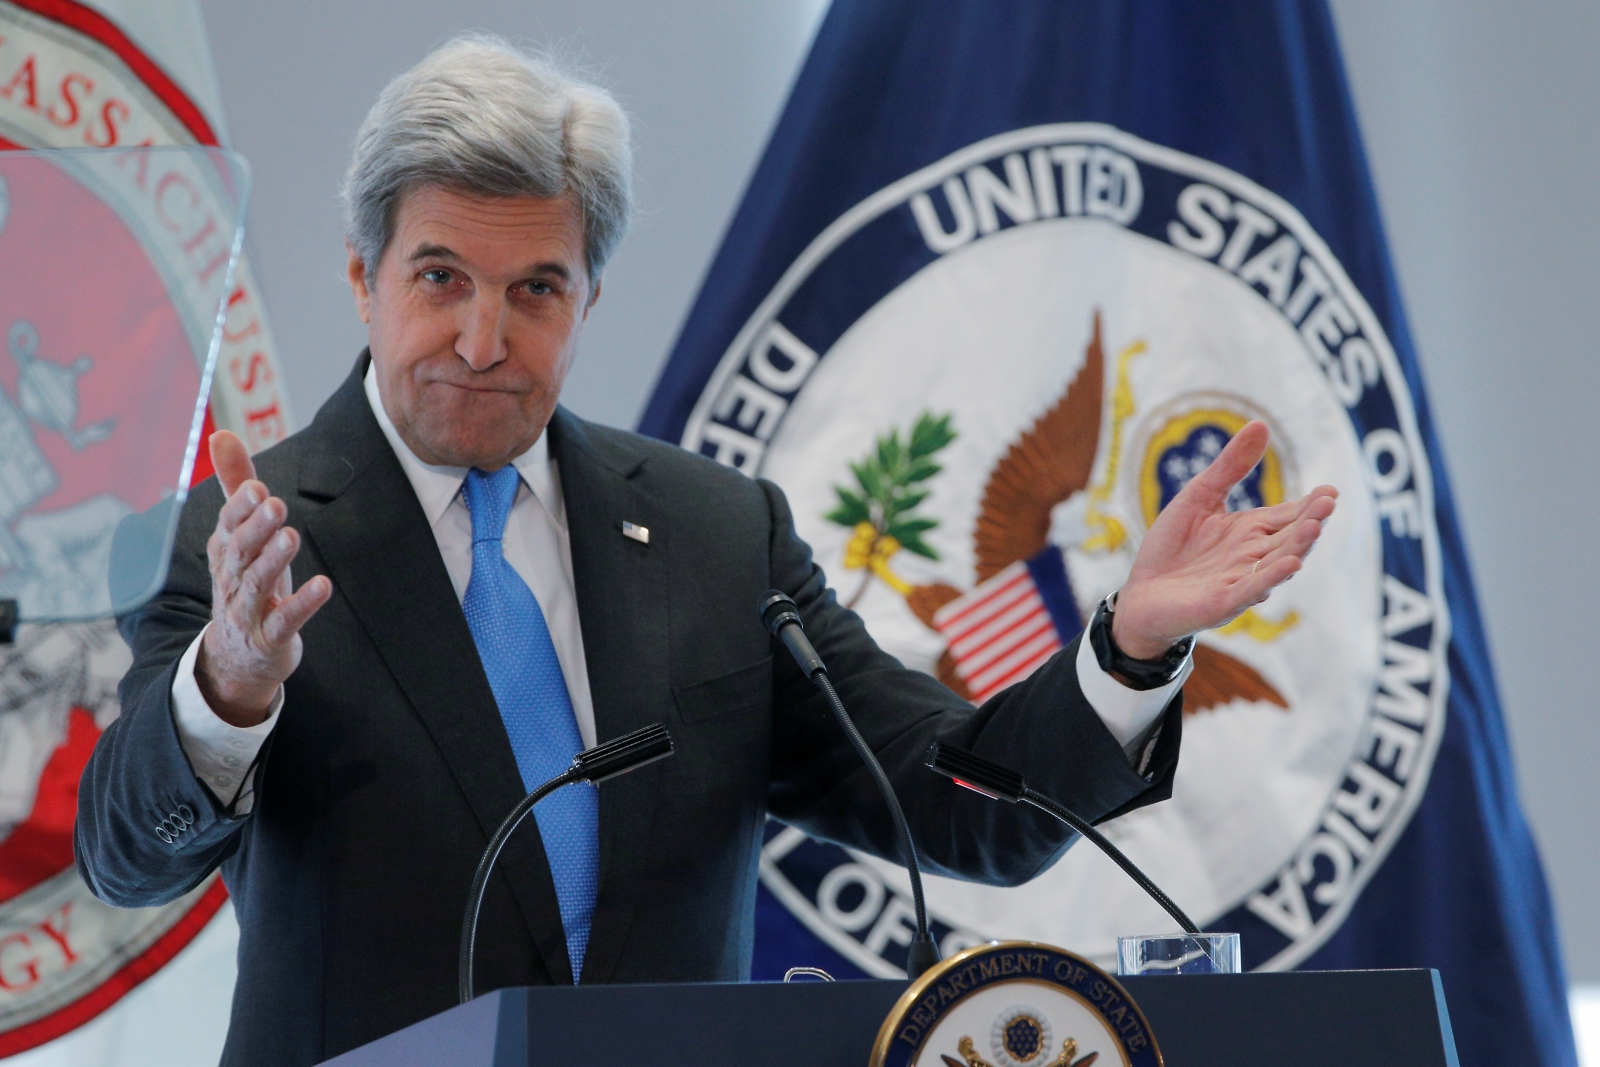 Kerry hits Nigeria gay marriage law -